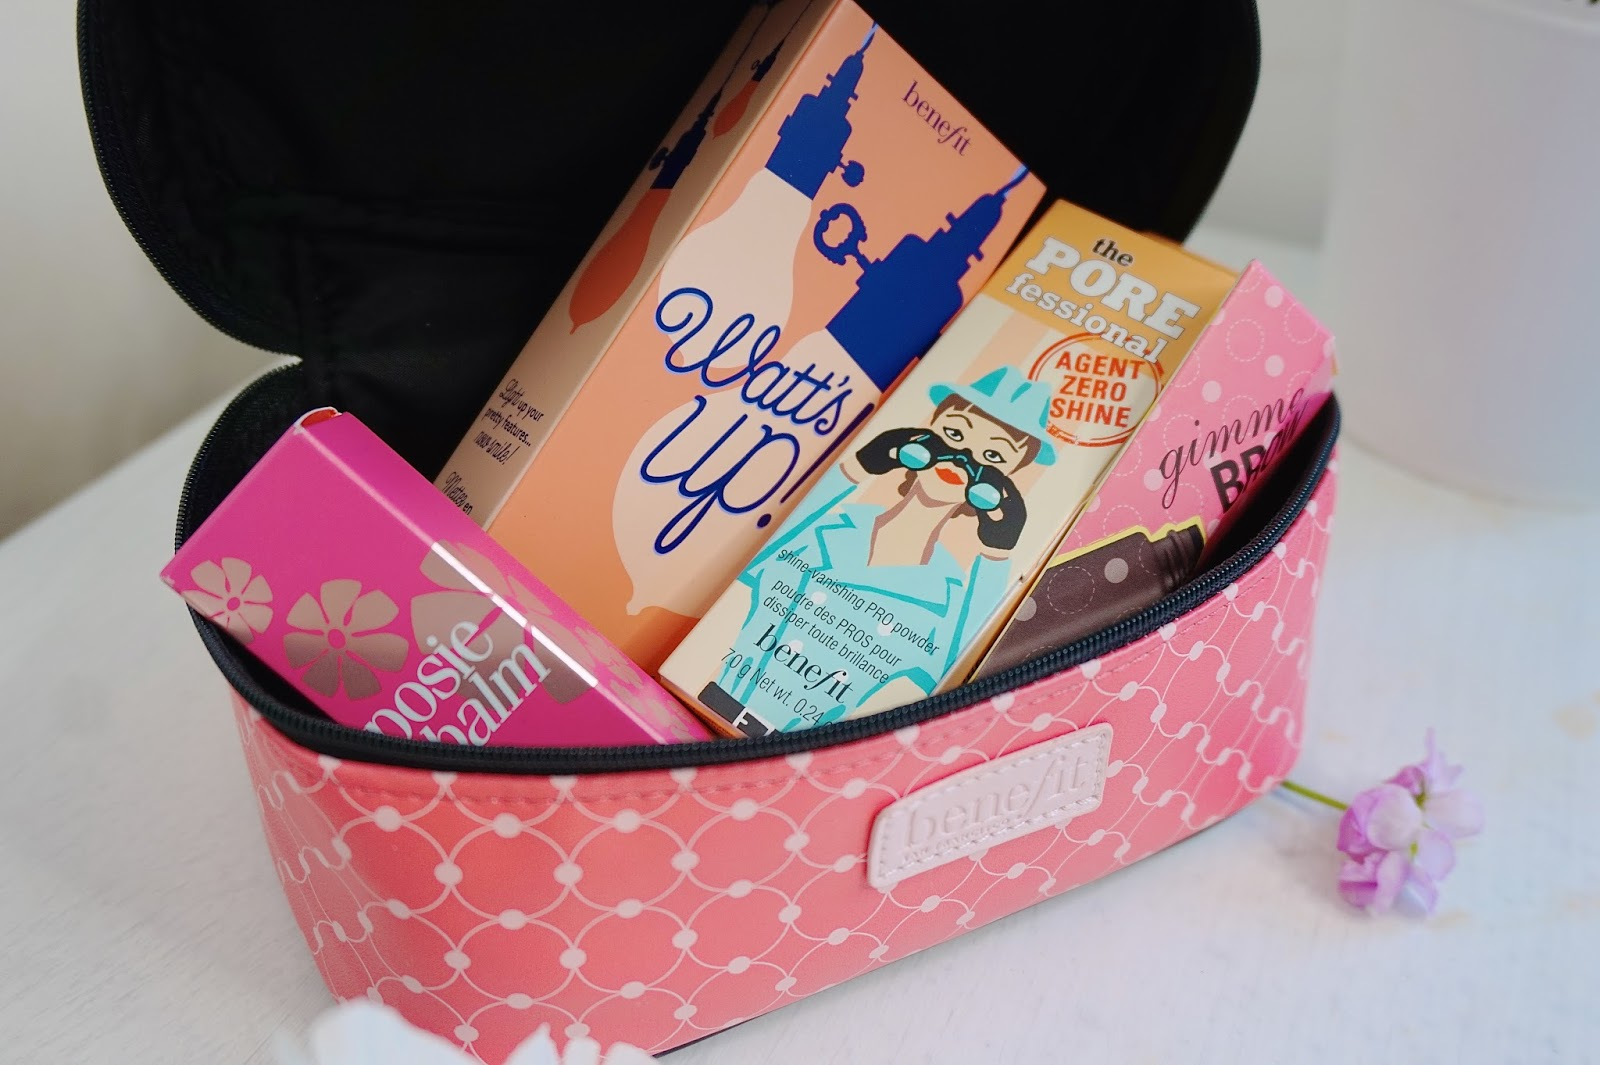 benefit cosmetics, make up, beauty, benefit cosmetics, benefit cosmetics UK, Benefit giveaway, benefit cosmetics giveaway, competition, win free make up, benefit cosmetics starter kit, benefit cosmetics review, watts up highlighter, benefit hoola bronzer, youtube